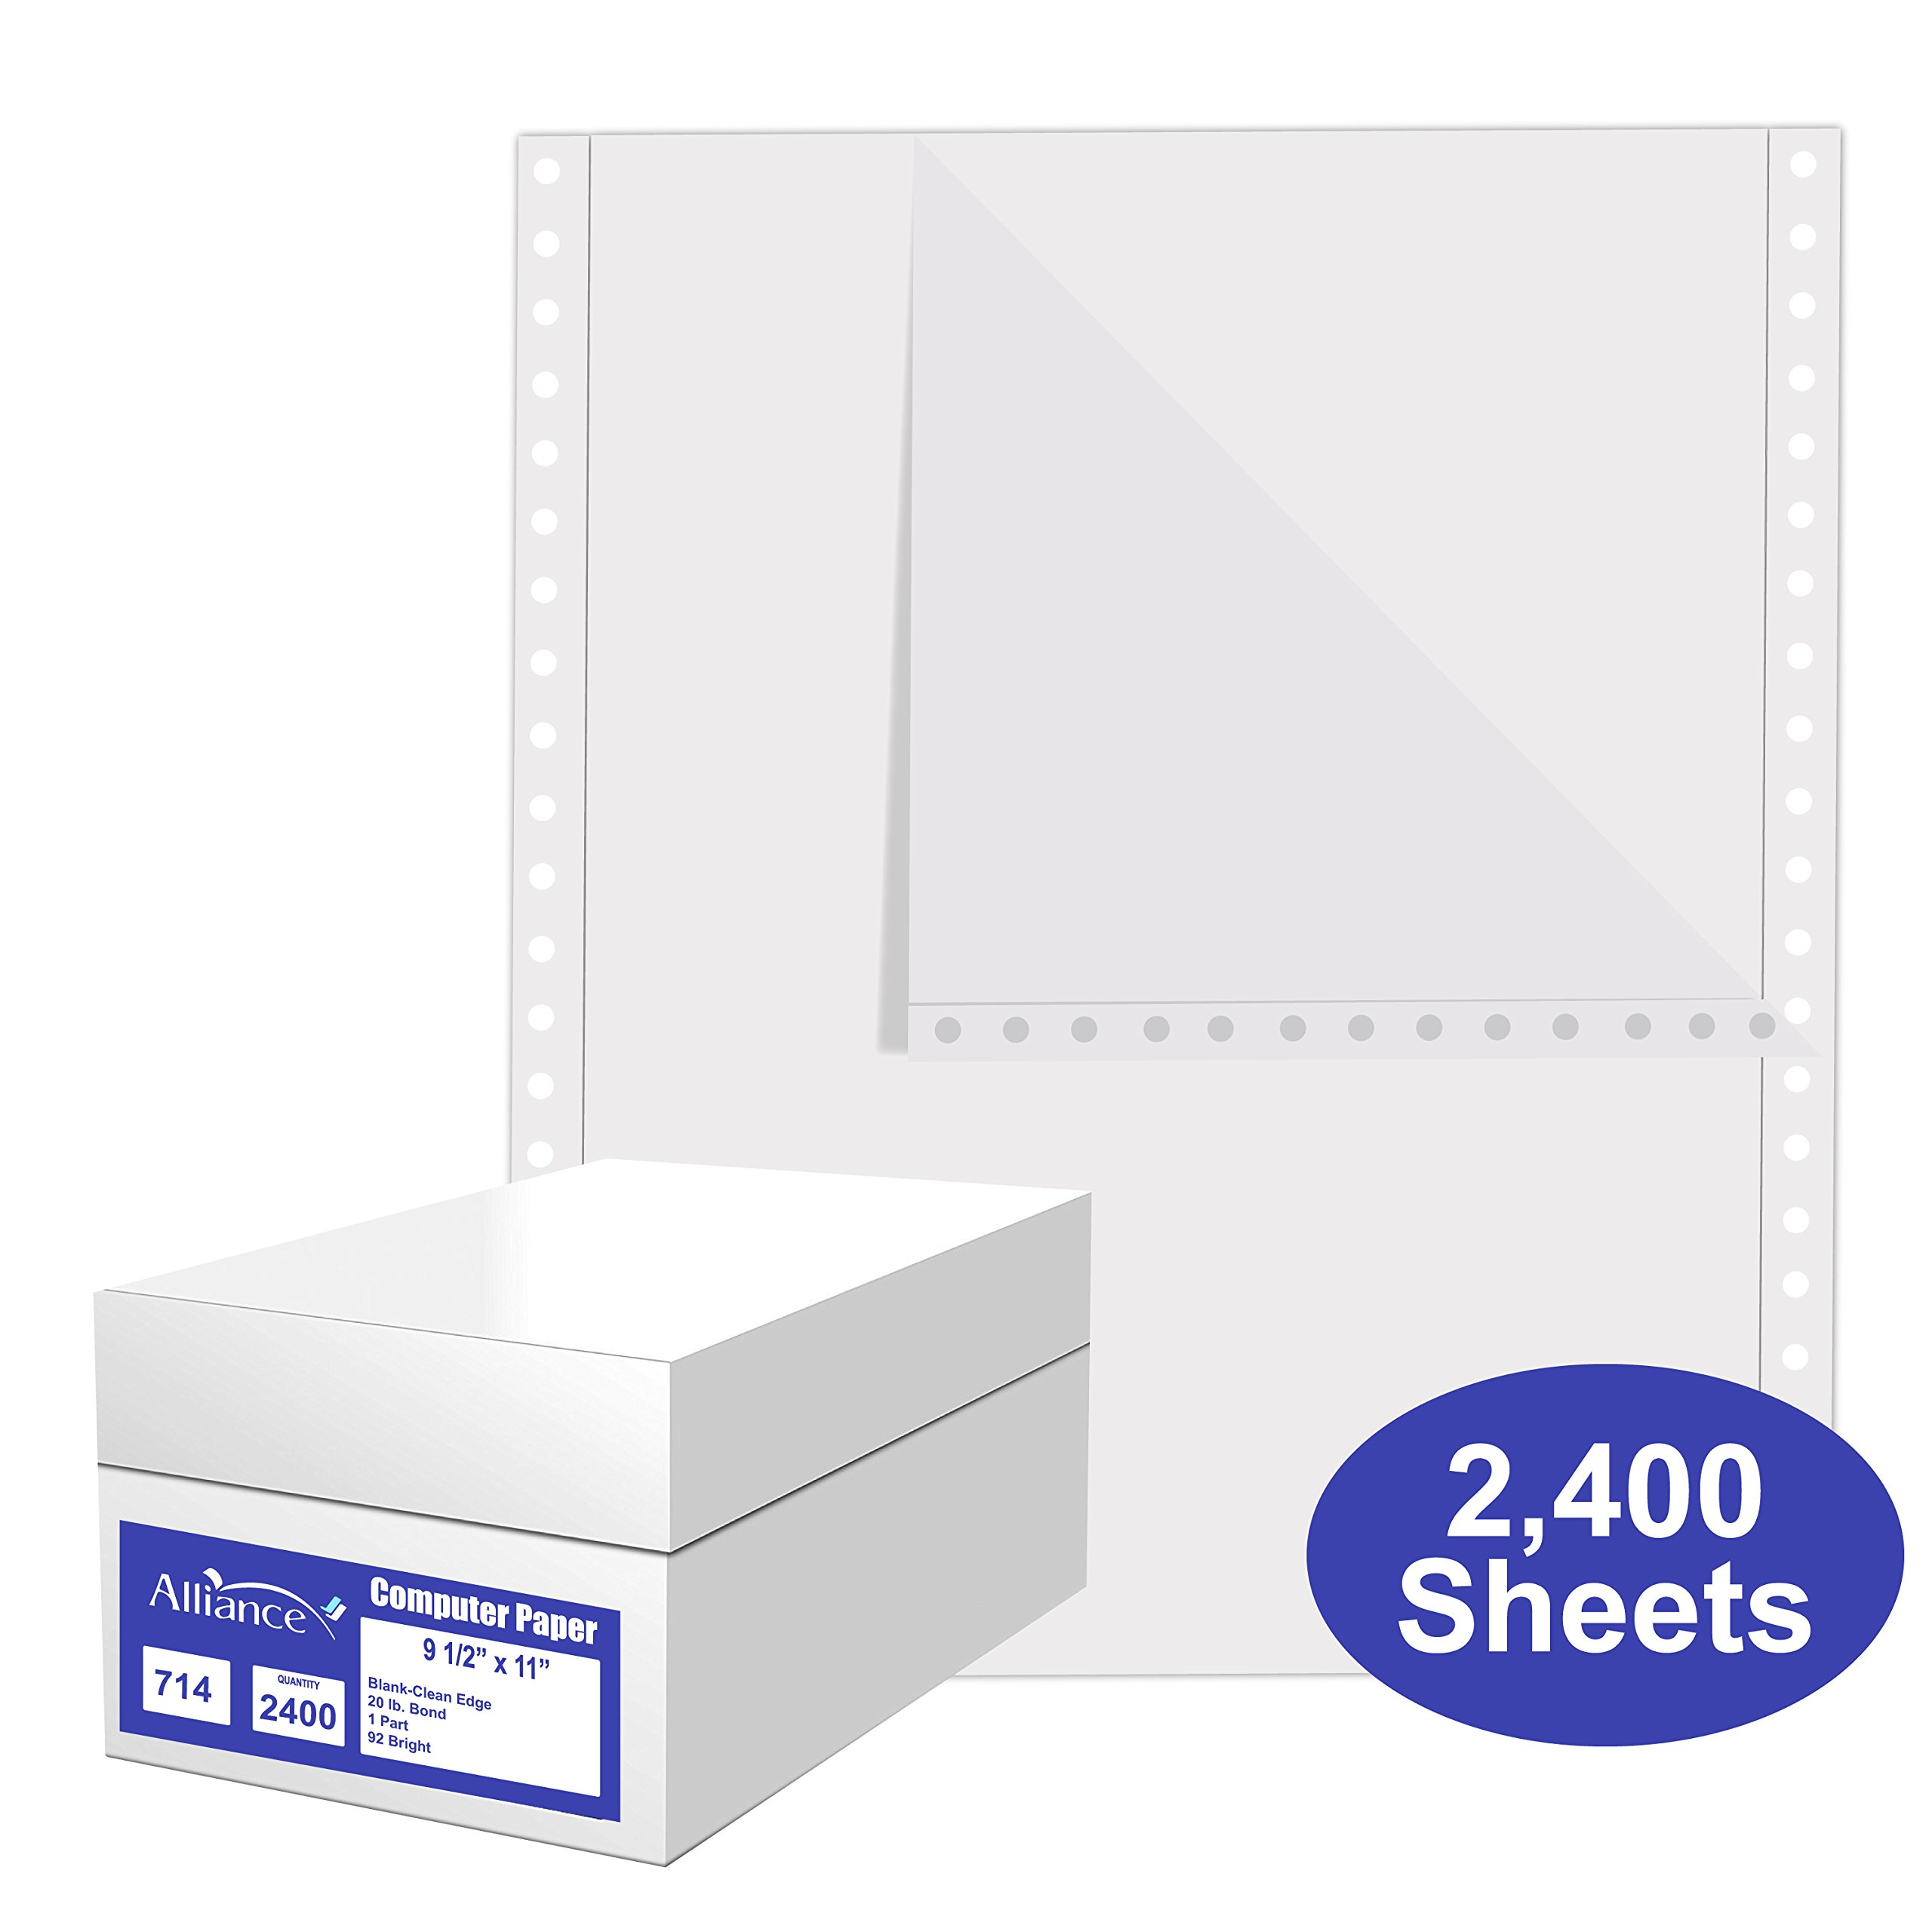 Alliance Continuous Computer Paper, 9.5 x 11, Blank Clean Perforated Edge 1-Part, 92 Bright, 20 lb, 2,400 Sheets (SKU 77714) - Made In The USA by Alliance